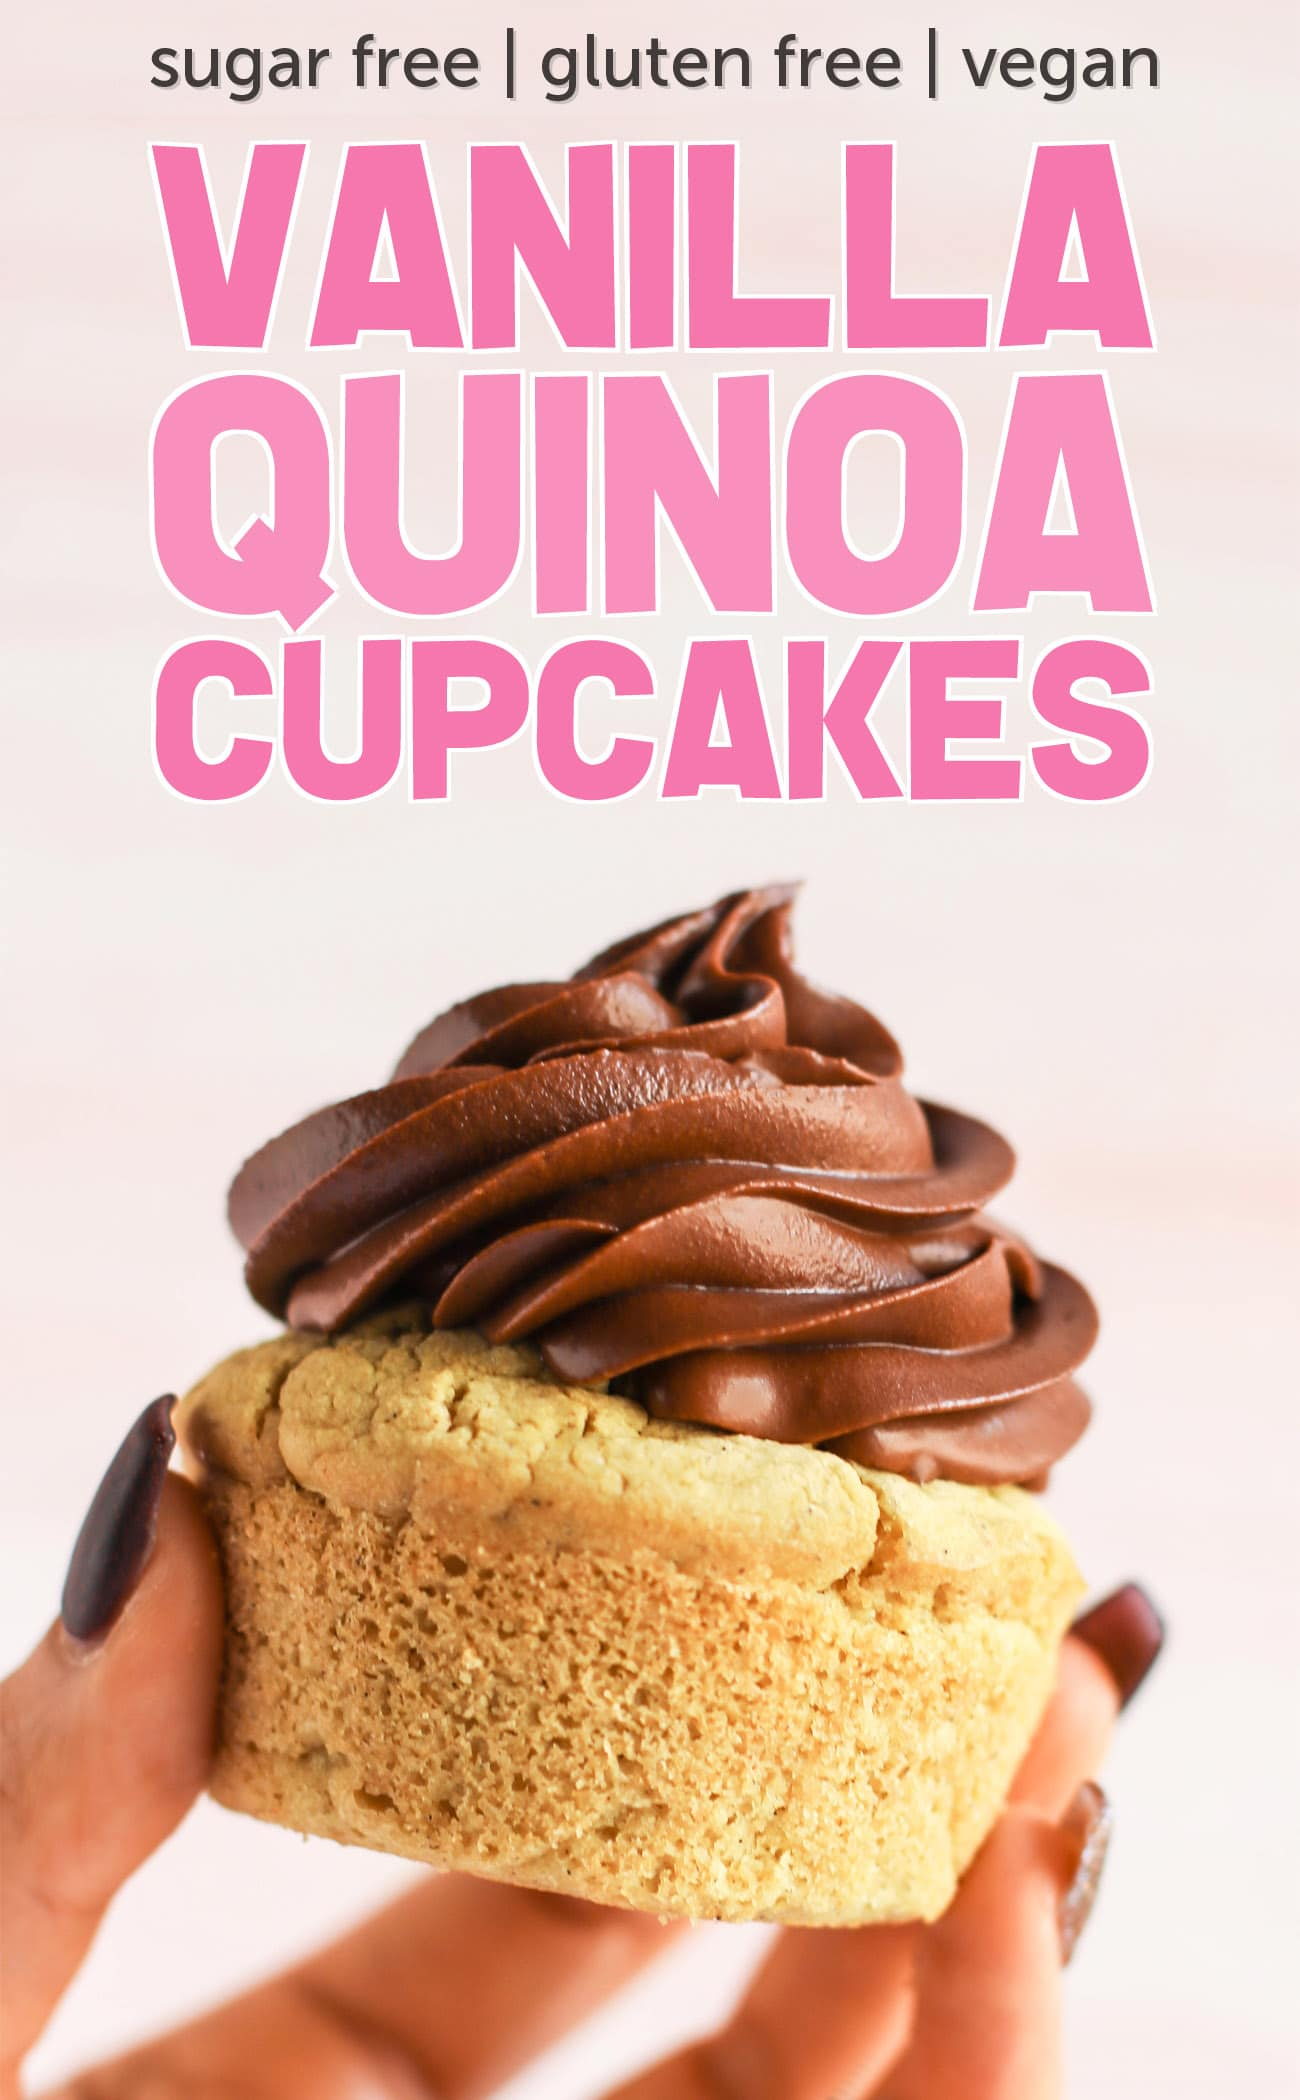 These Healthy Vanilla Quinoa Cupcakes are fluffy, springy, and moist! Top them with a healthy frosting and you've got the most nutritious, guilt-free treat! Made with quinoa flour, sorghum flour, coconut yogurt, and coconut milk, so they're gluten free, dairy free, vegan, and sugar free!